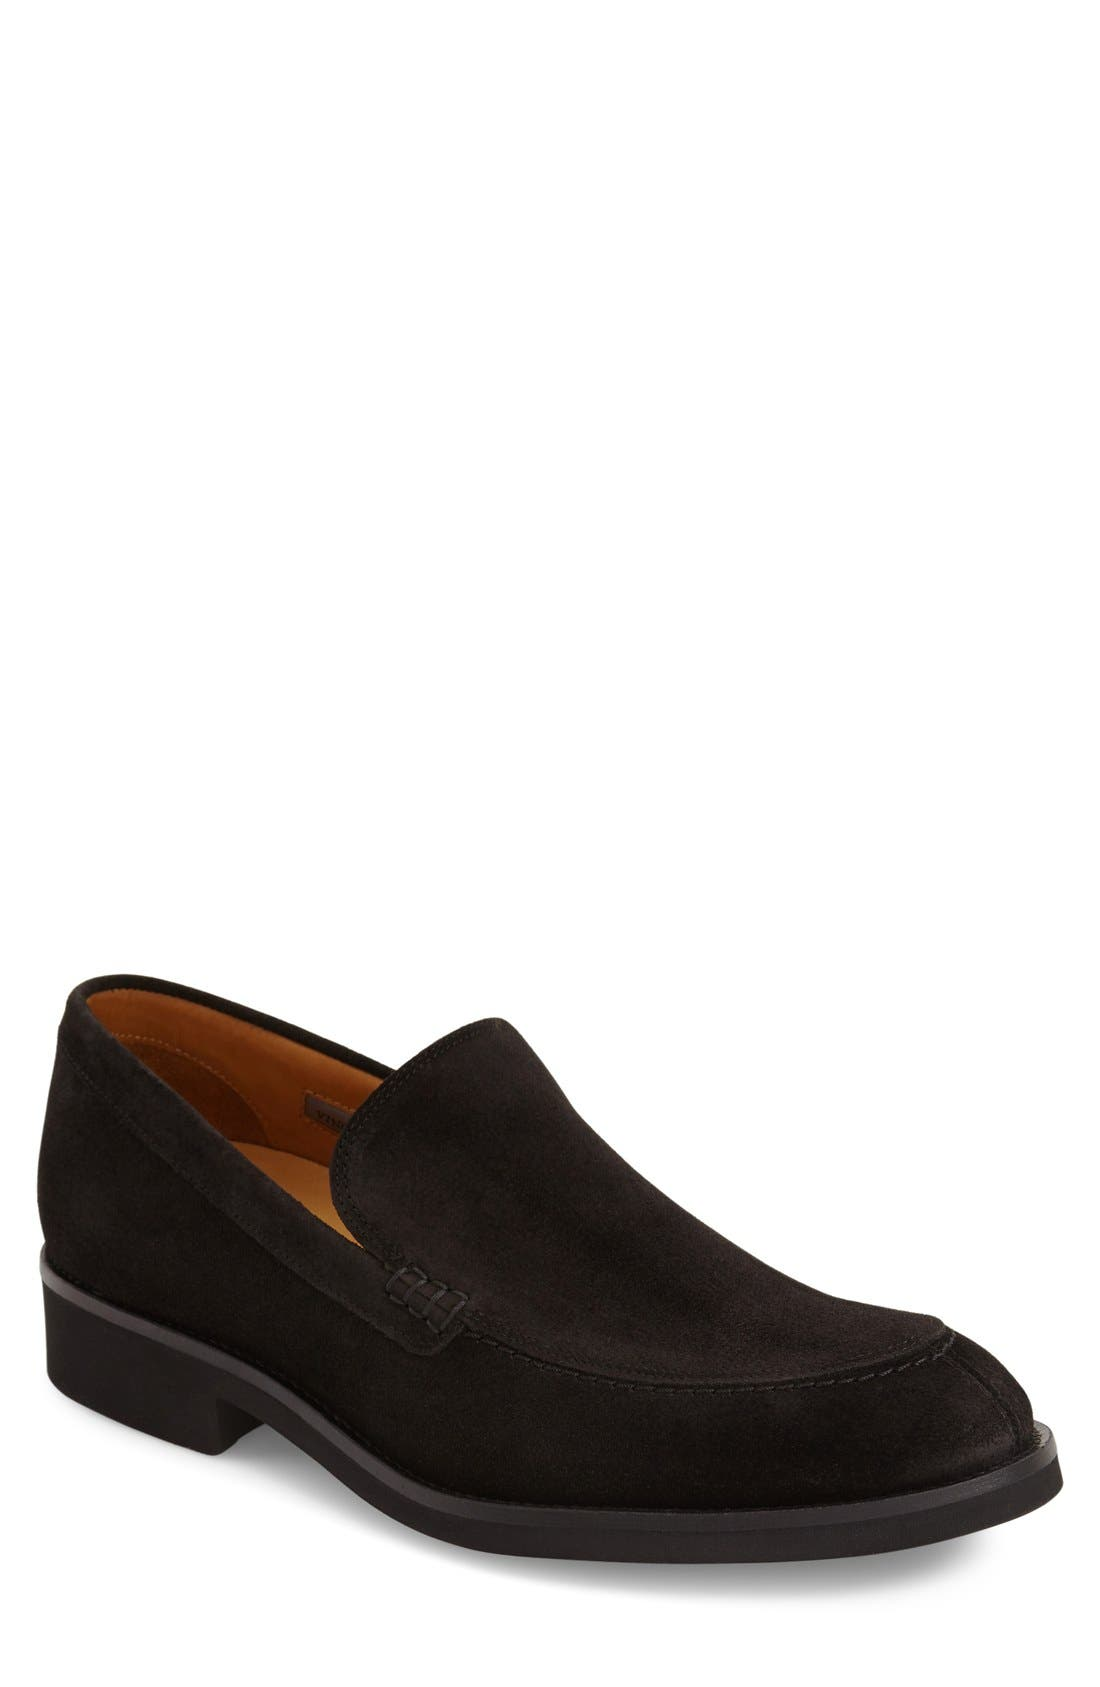 Main Image - Vince Camuto 'Arleigh' Loafer (Men)